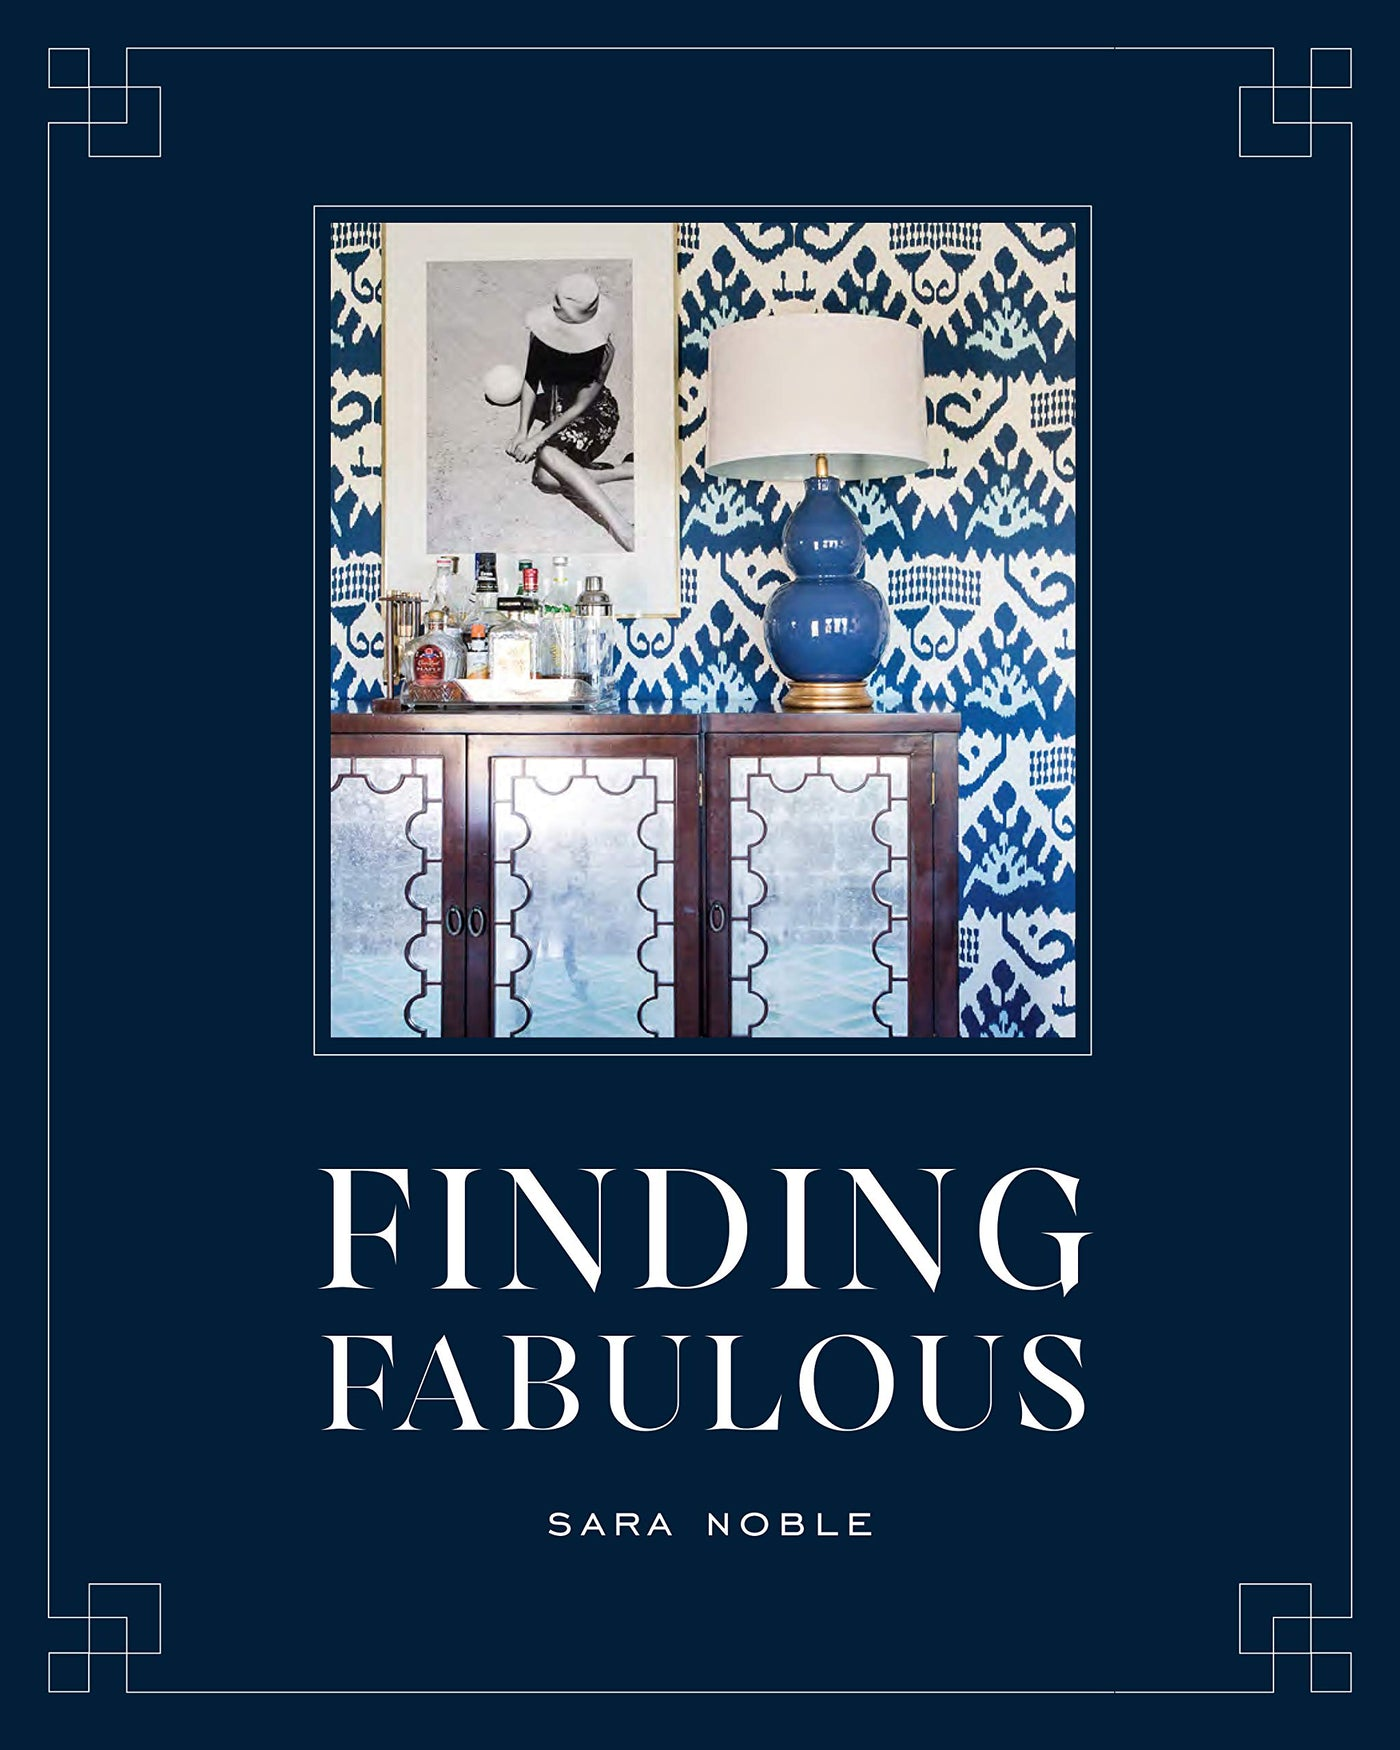 Finding Fabulous by Sara Noble